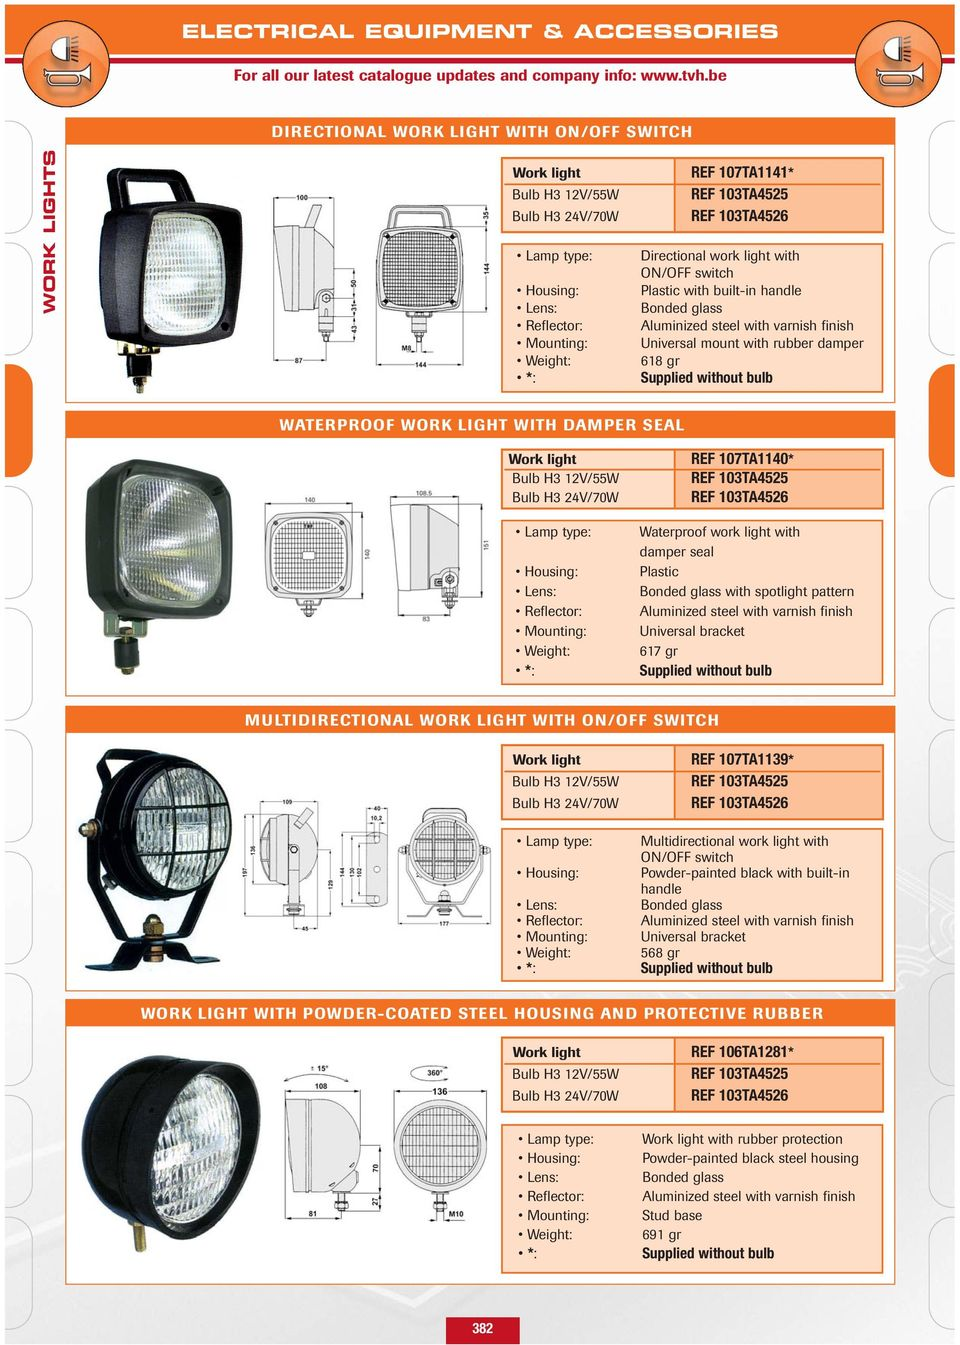 Tvh Has A Large Stock Of Pdf 24v Spotlight Wiring Diagram H3 12v 55w Bulb 70w Weight Ref 107ta1140